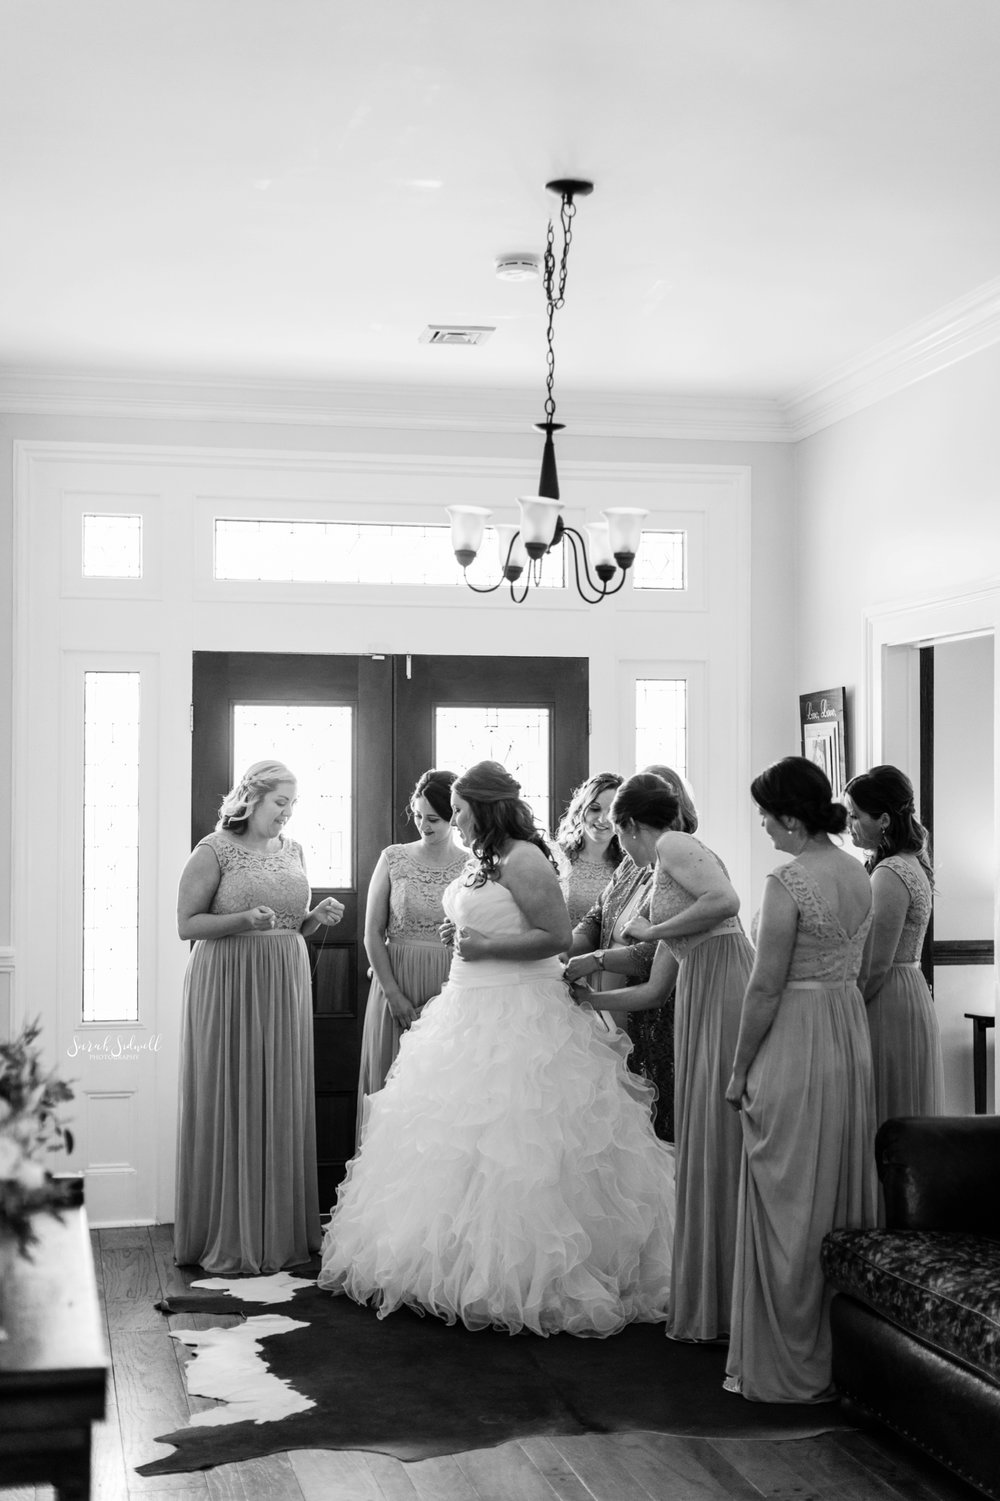 A bride gets ready for her wedding with her friends.